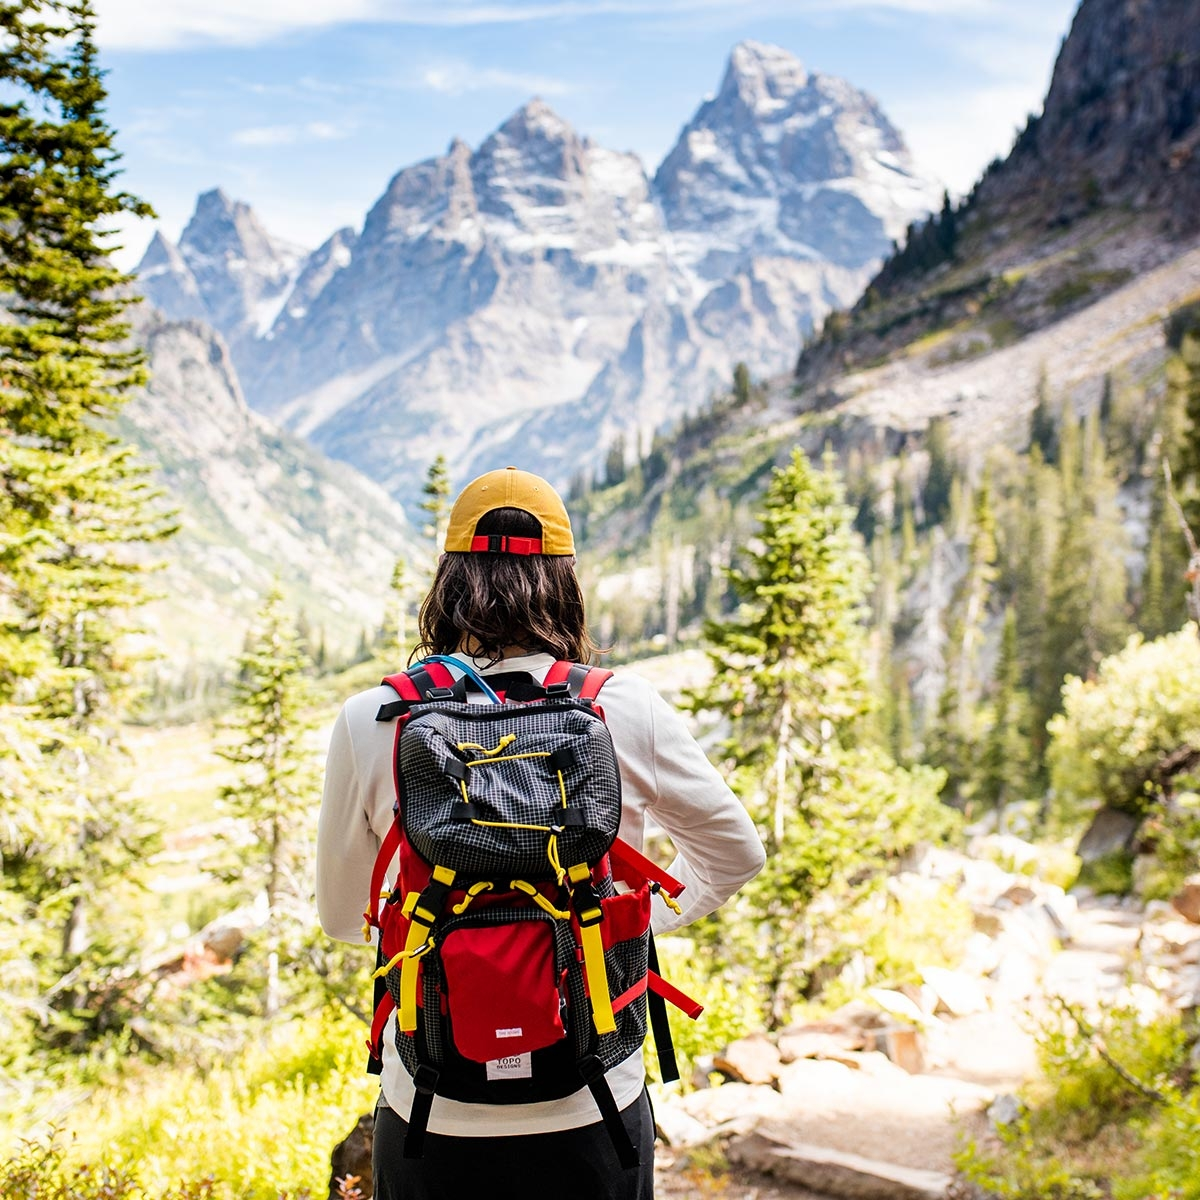 Topo Designs Topo Designs Subalpine Pack,  with a roomy main compartment make this the perfect pack for hiking